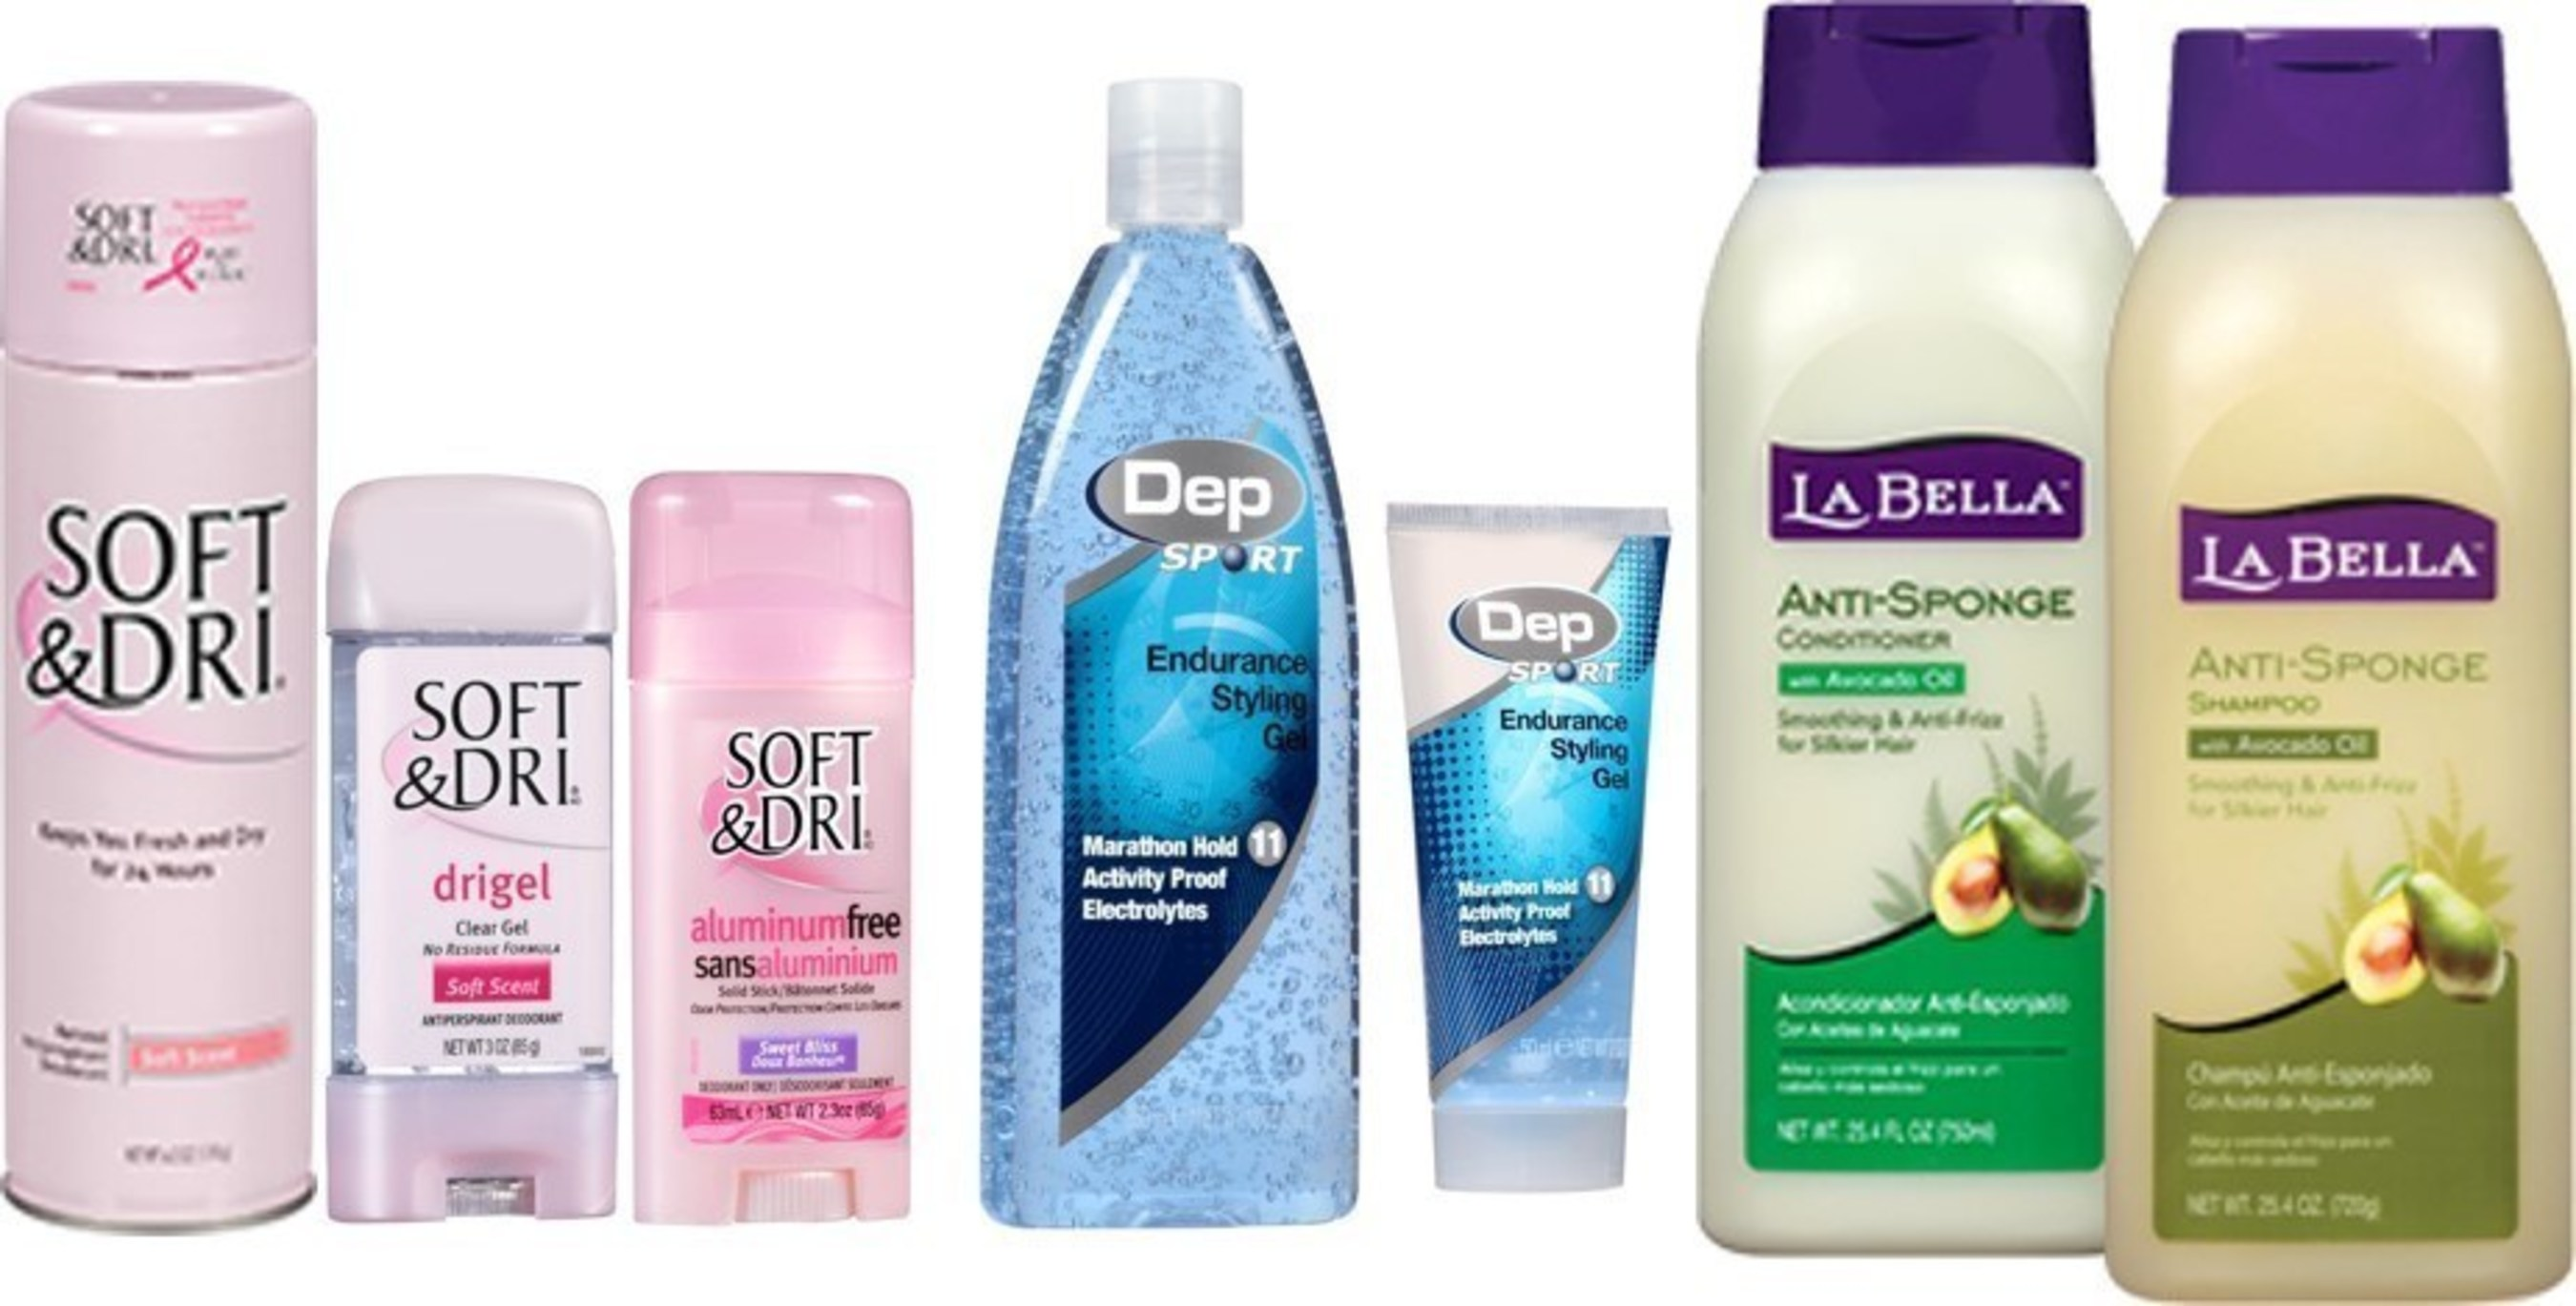 The Village Company Acquires Iconic Personal Care Brands From High Ridge Brands